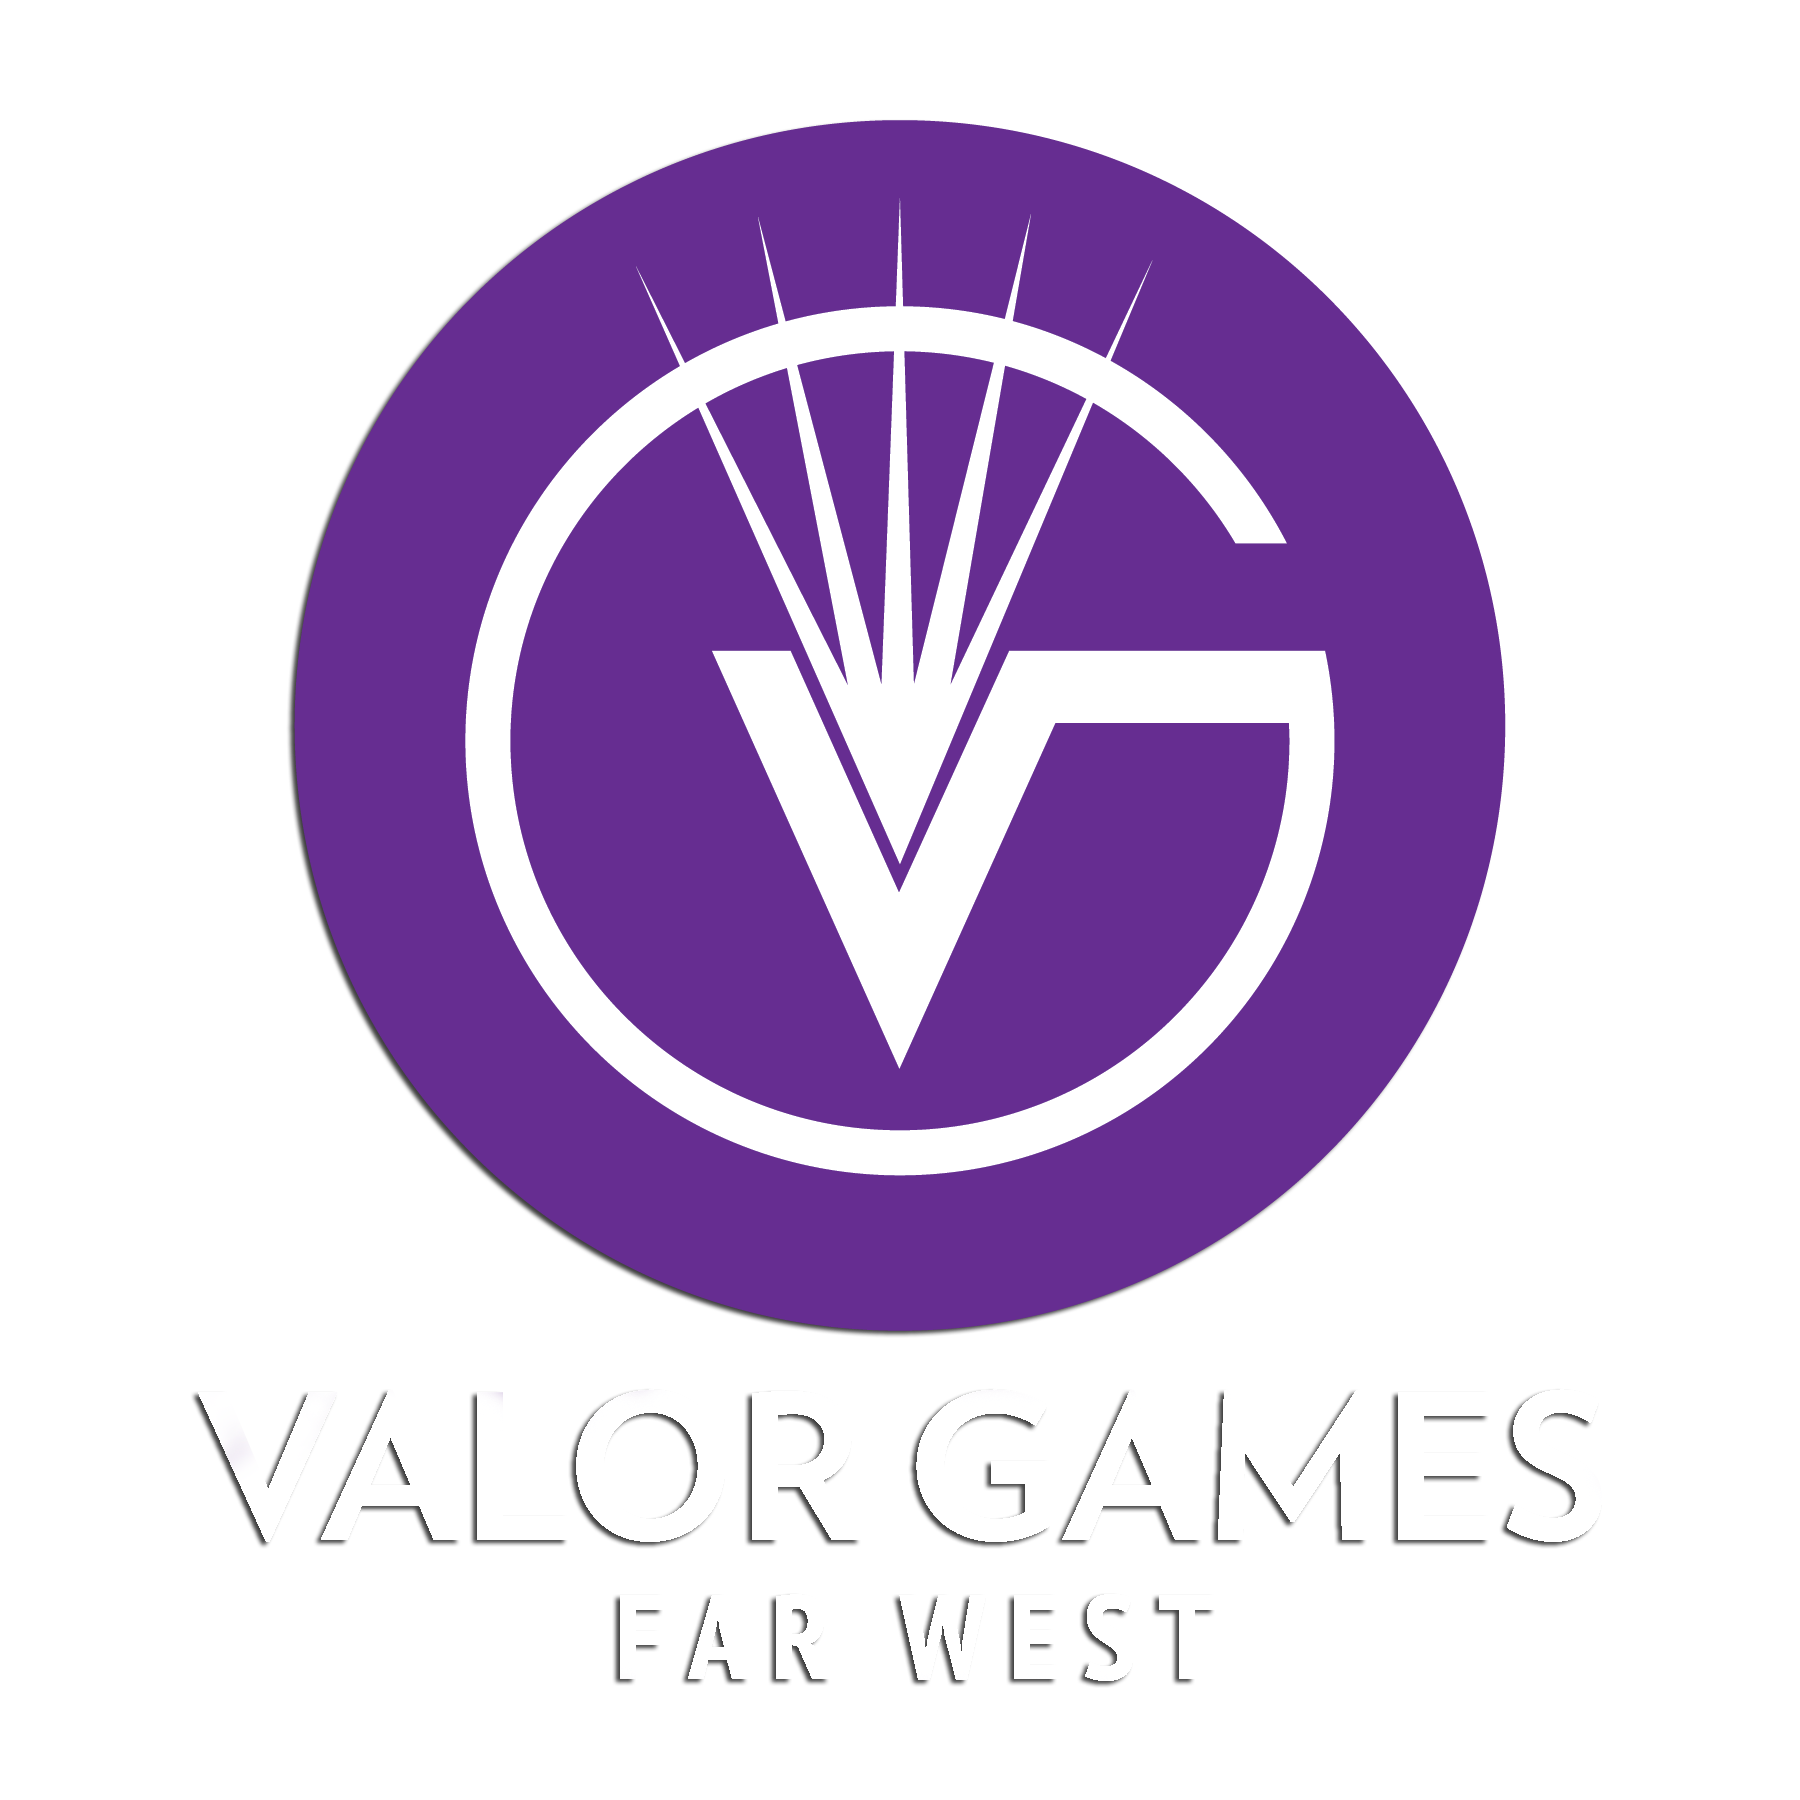 Valor Games Far West | June 11-14, 2020